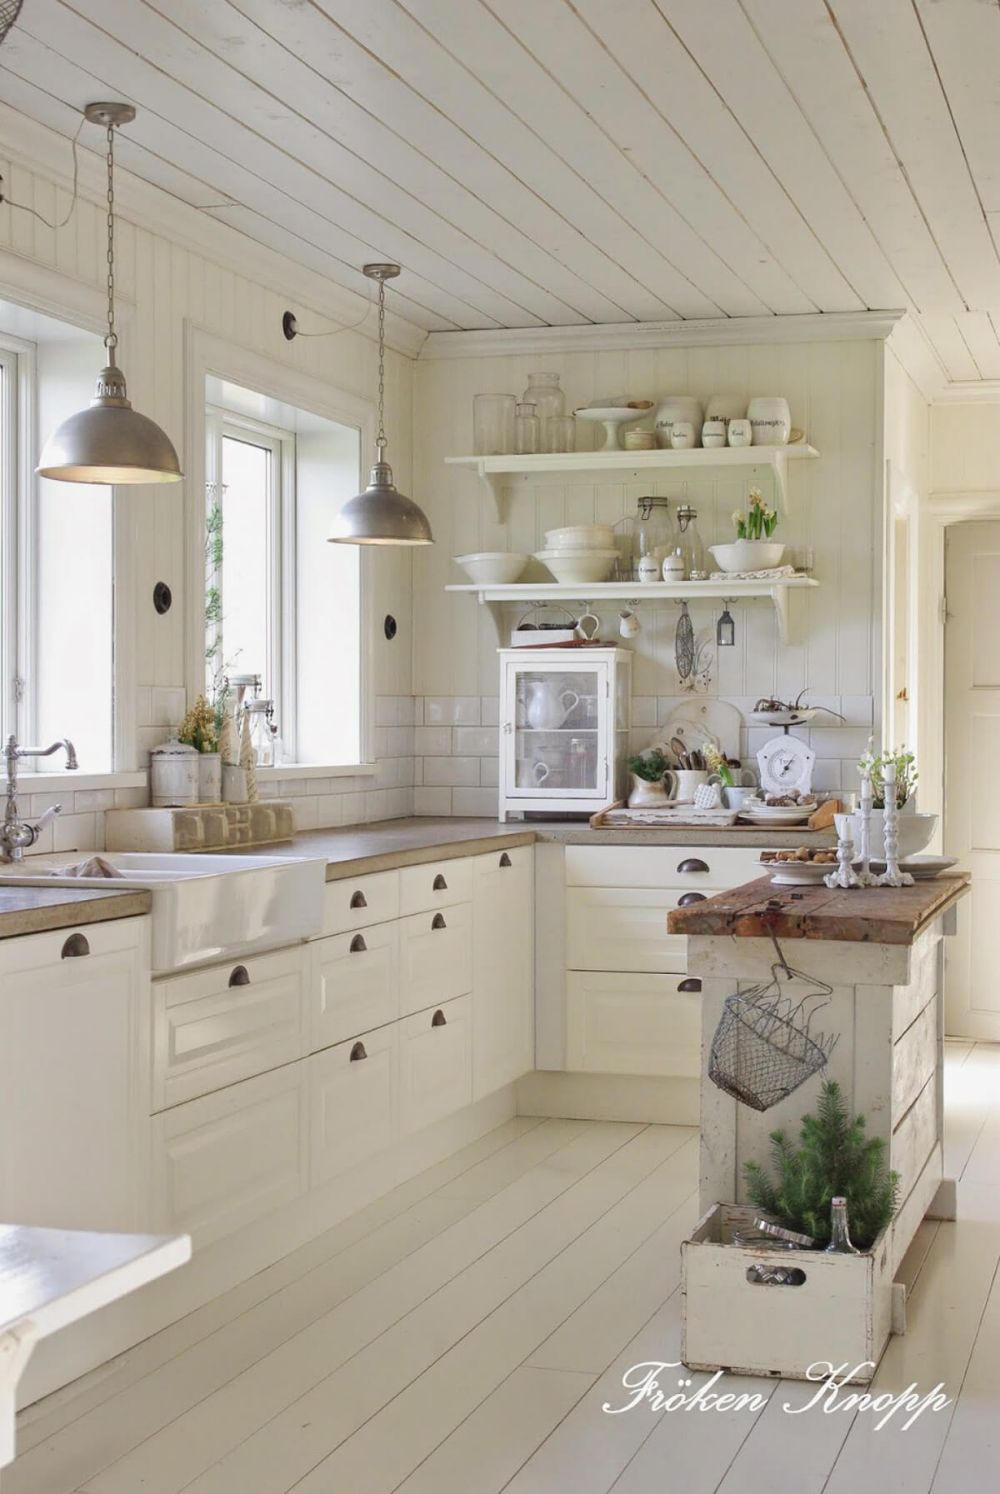 23 Delightful Cottage Kitchen Design And Decorating Ideas That Will Add Charm To Your Home Country Kitchen Trendy Farmhouse Kitchen Rustic Farmhouse Kitchen